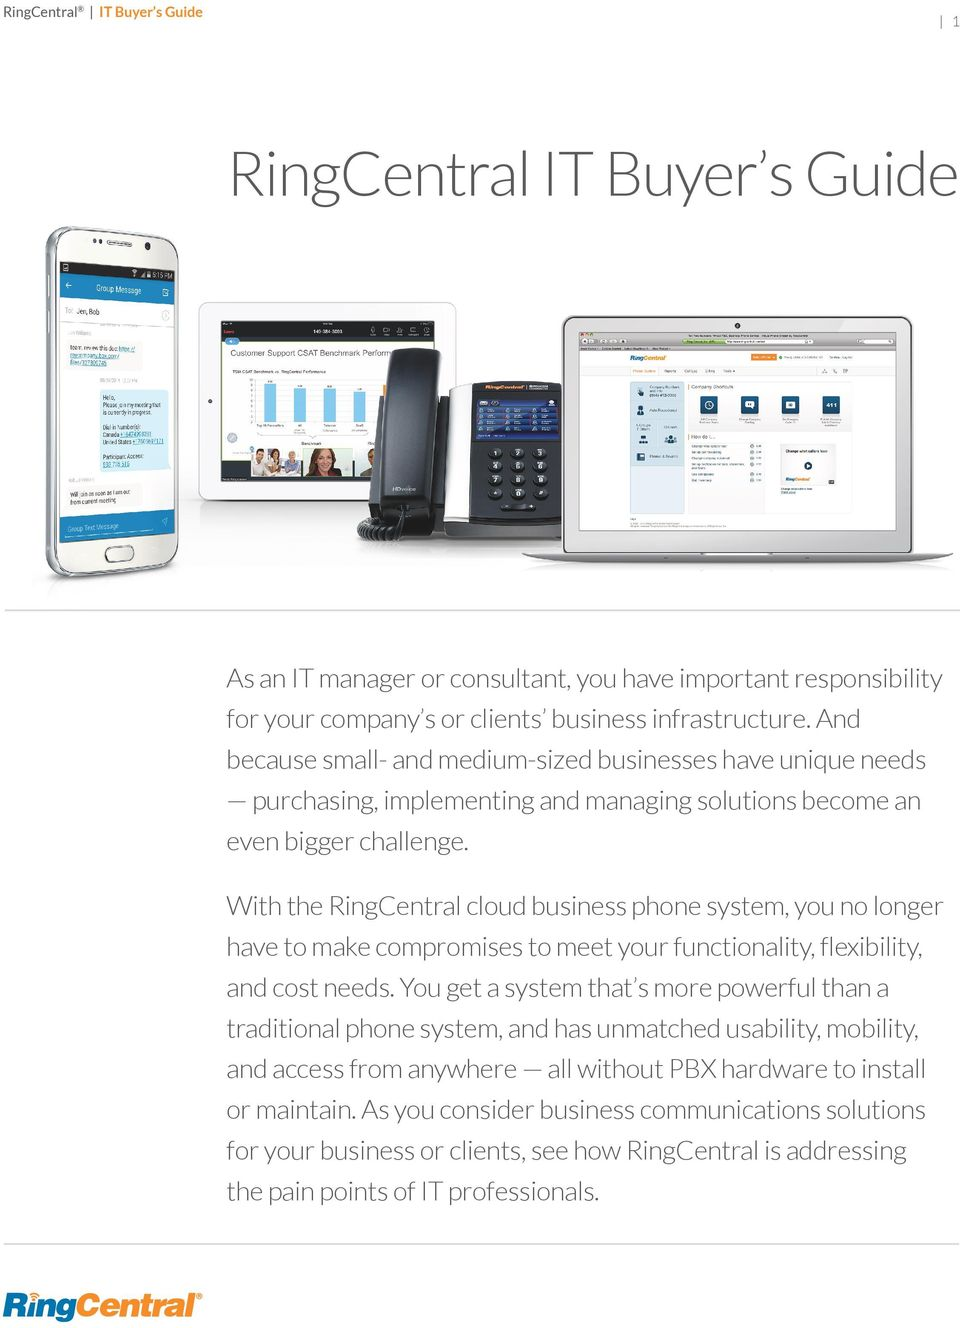 With the RingCentral cloud business phone system, you no longer have to make compromises to meet your functionality, flexibility, and cost needs.